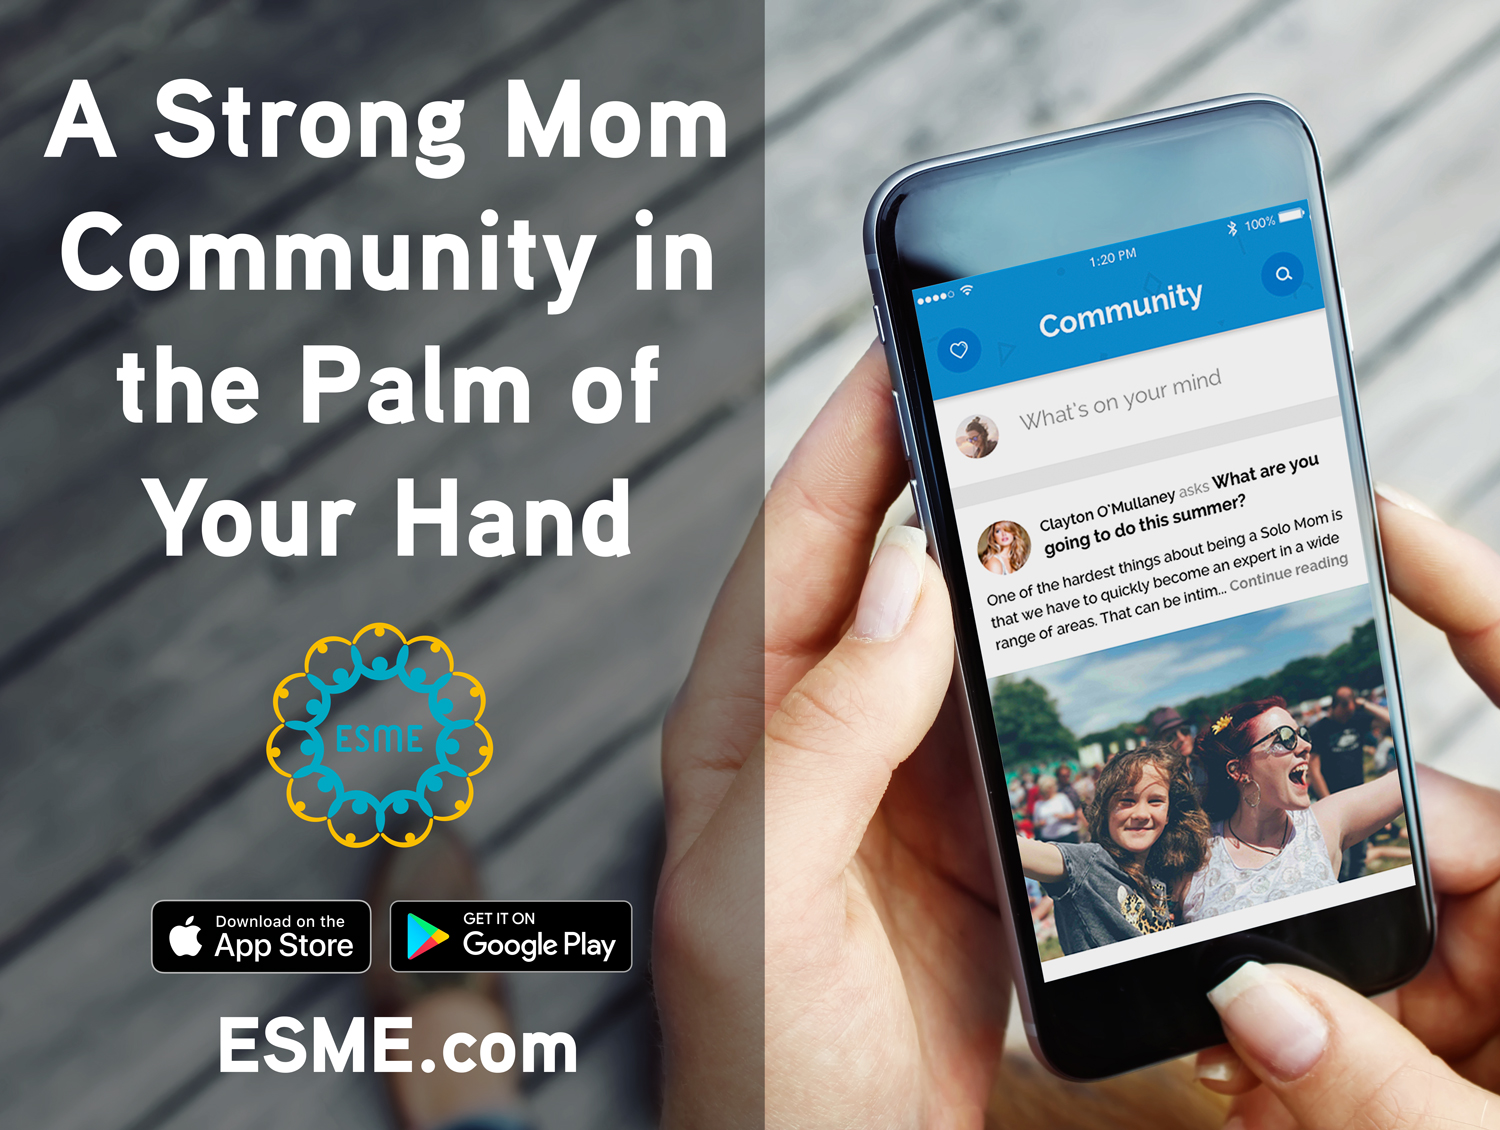 Check out ESME's app for Solo Moms.